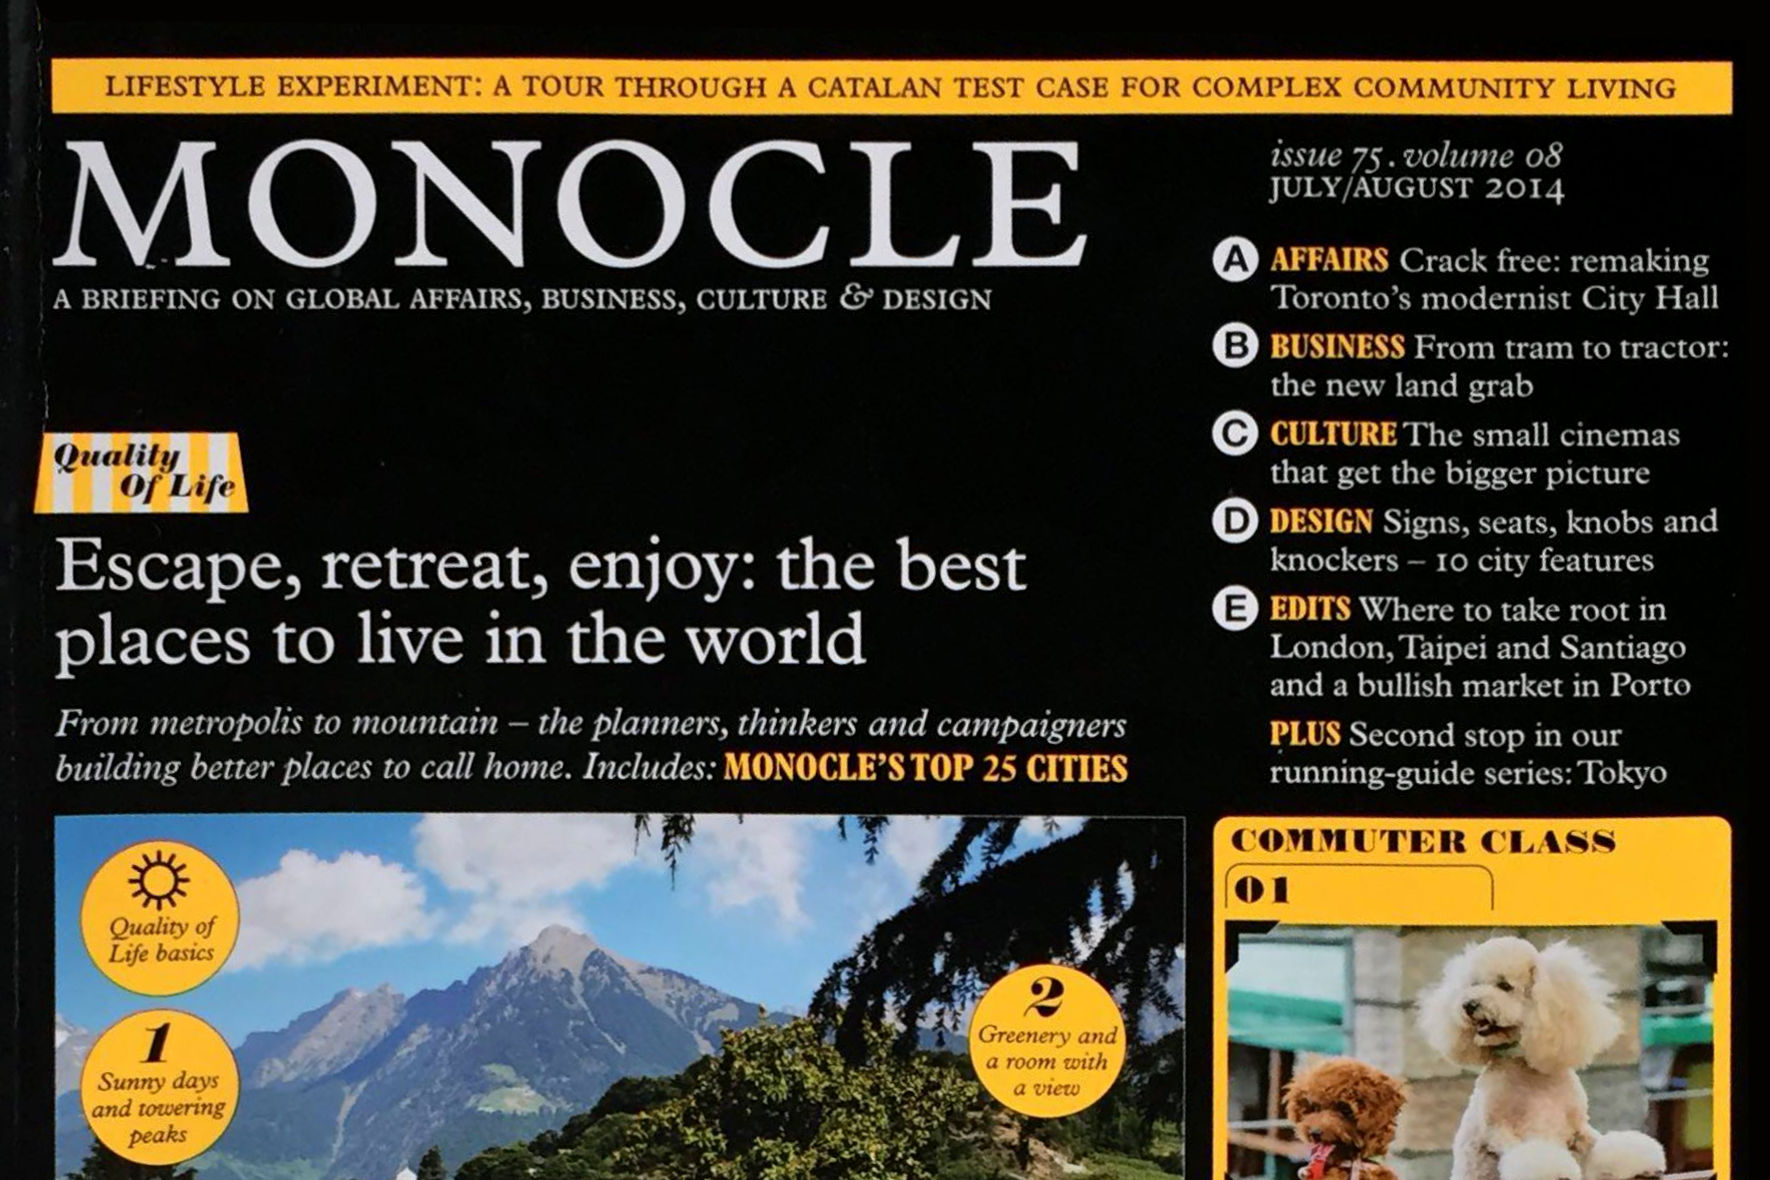 Cover of Monocle magazine, Issue 75, Voume 08, July/August 2014.